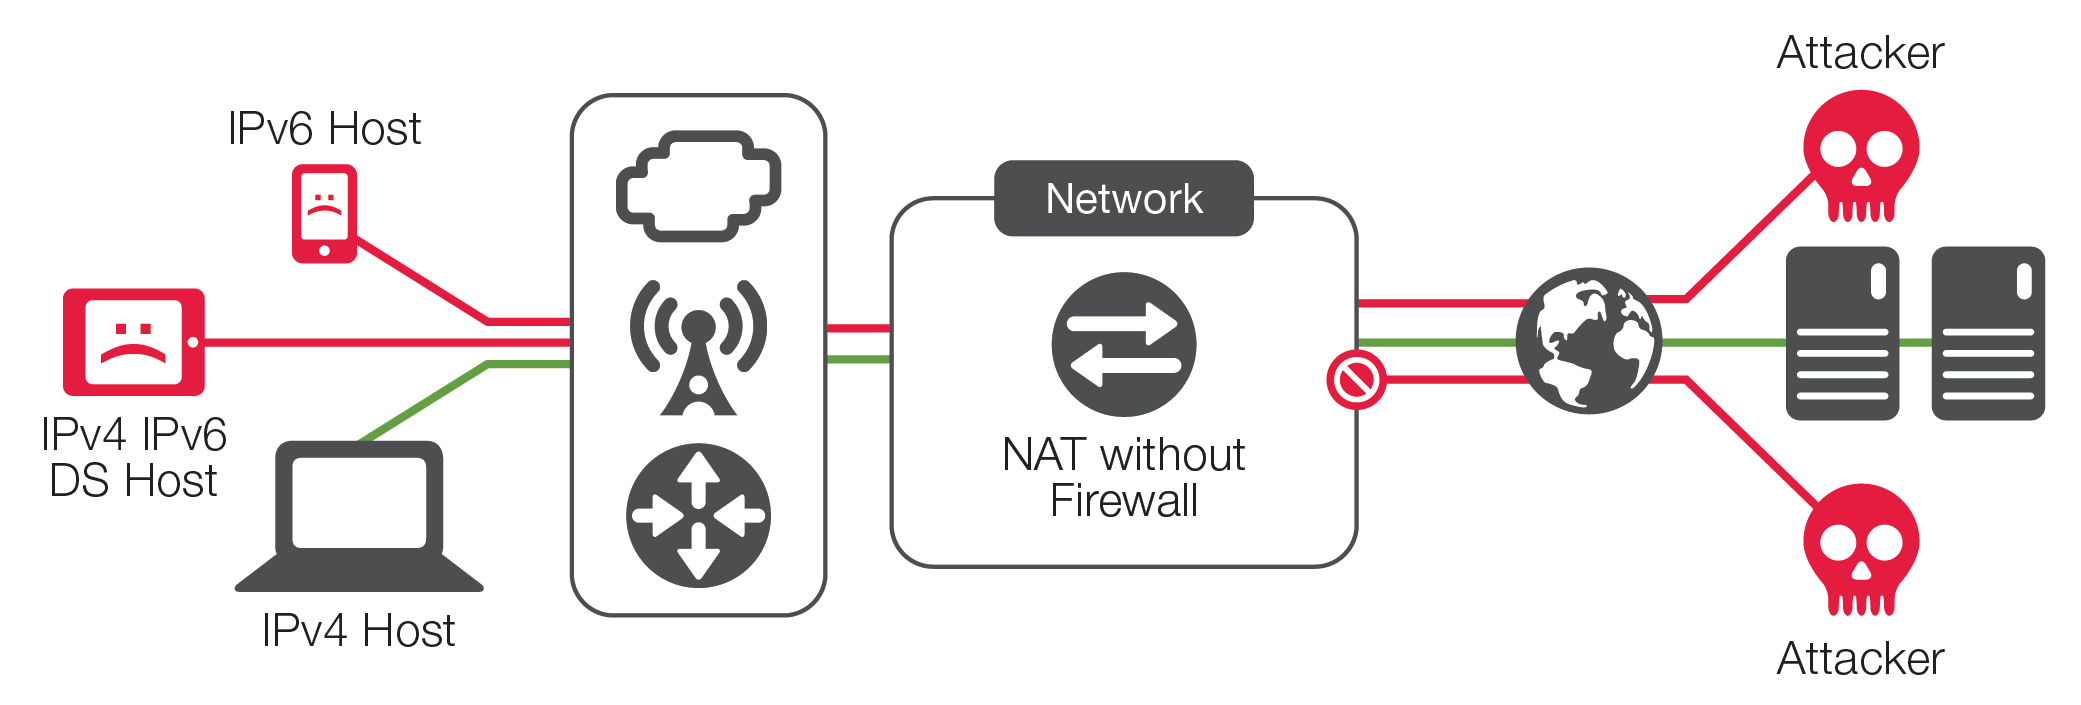 A CGNAT point product may serve to provide limited security for IPv4 hosts, but leaves IPv6 hosts completely unprotected